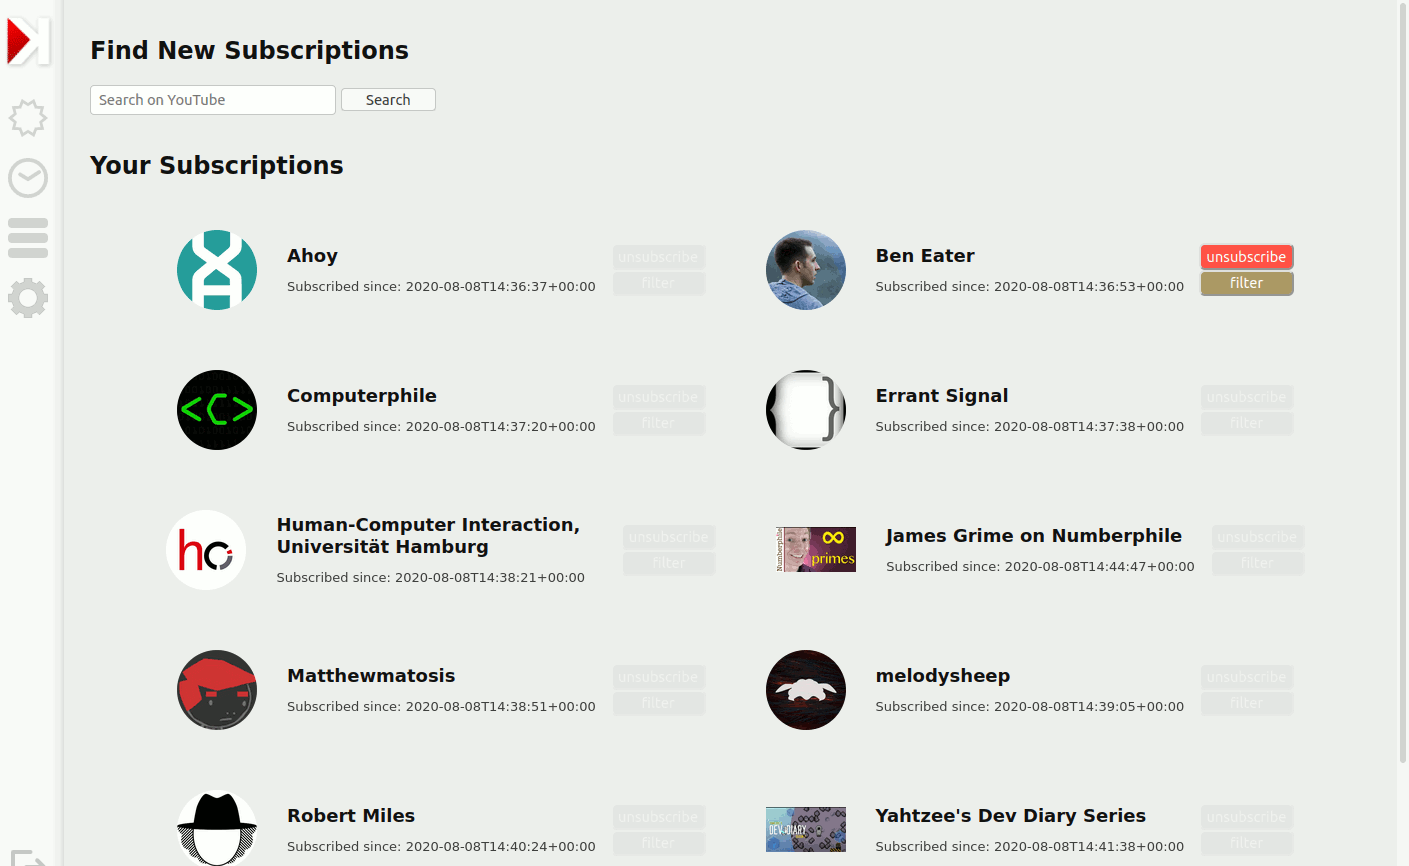 The subscription management screen shows a list of subscriptions with buttons to unsubscribe or filter, as well as a field to search on YouTube